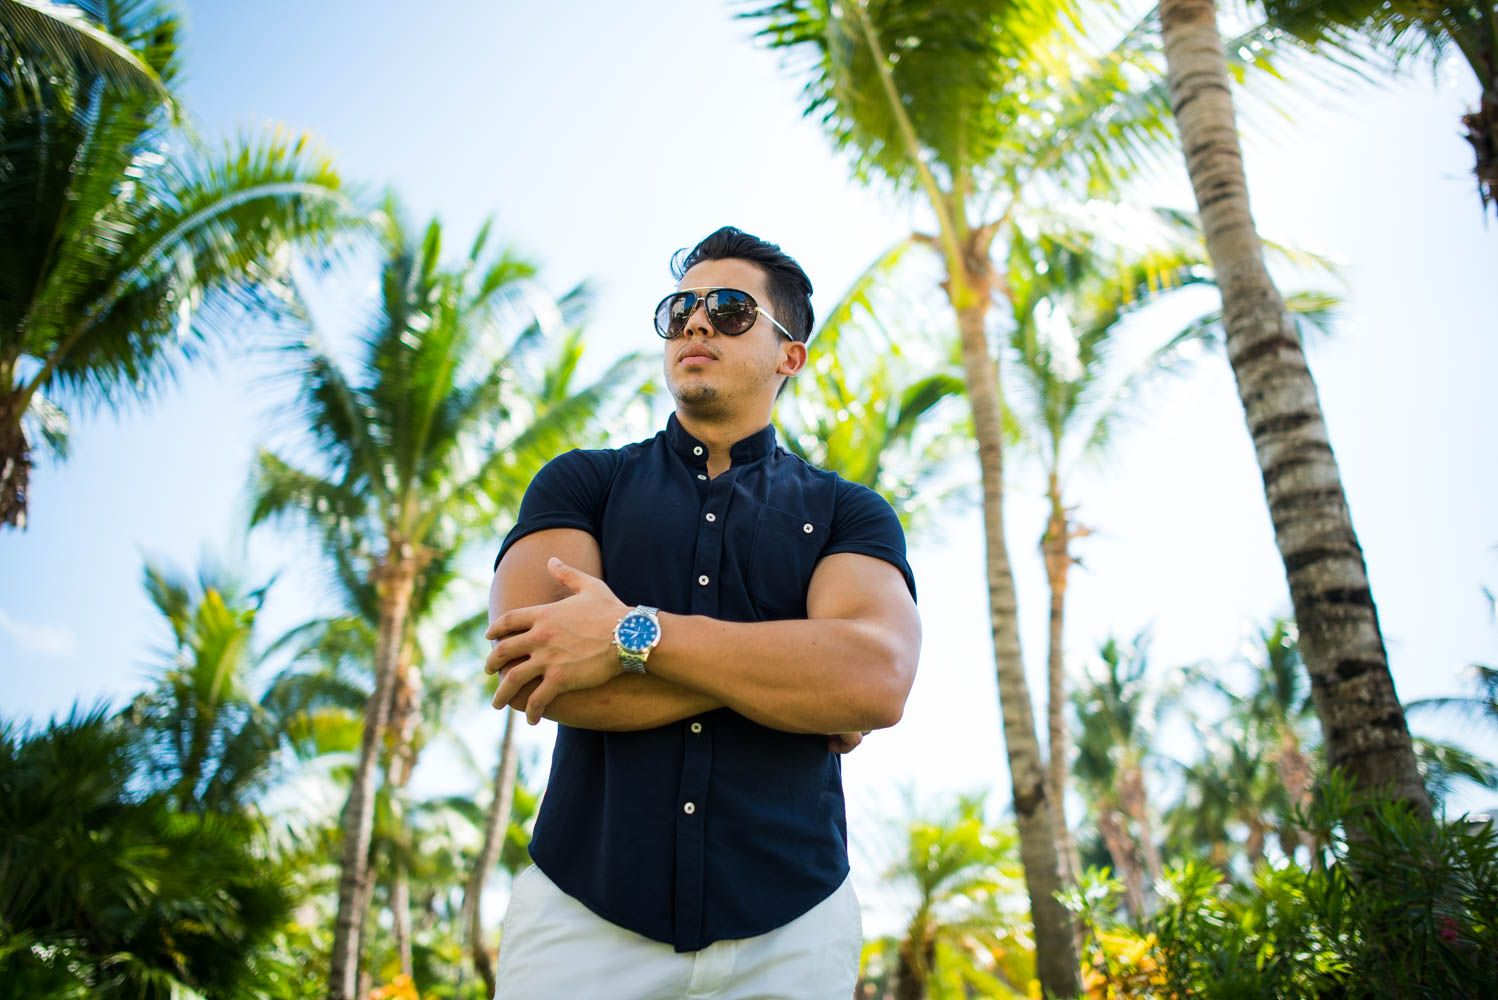 Men's Beach Outfit Idea To a Resort In Cancun, Mexico | Royal Fashionist